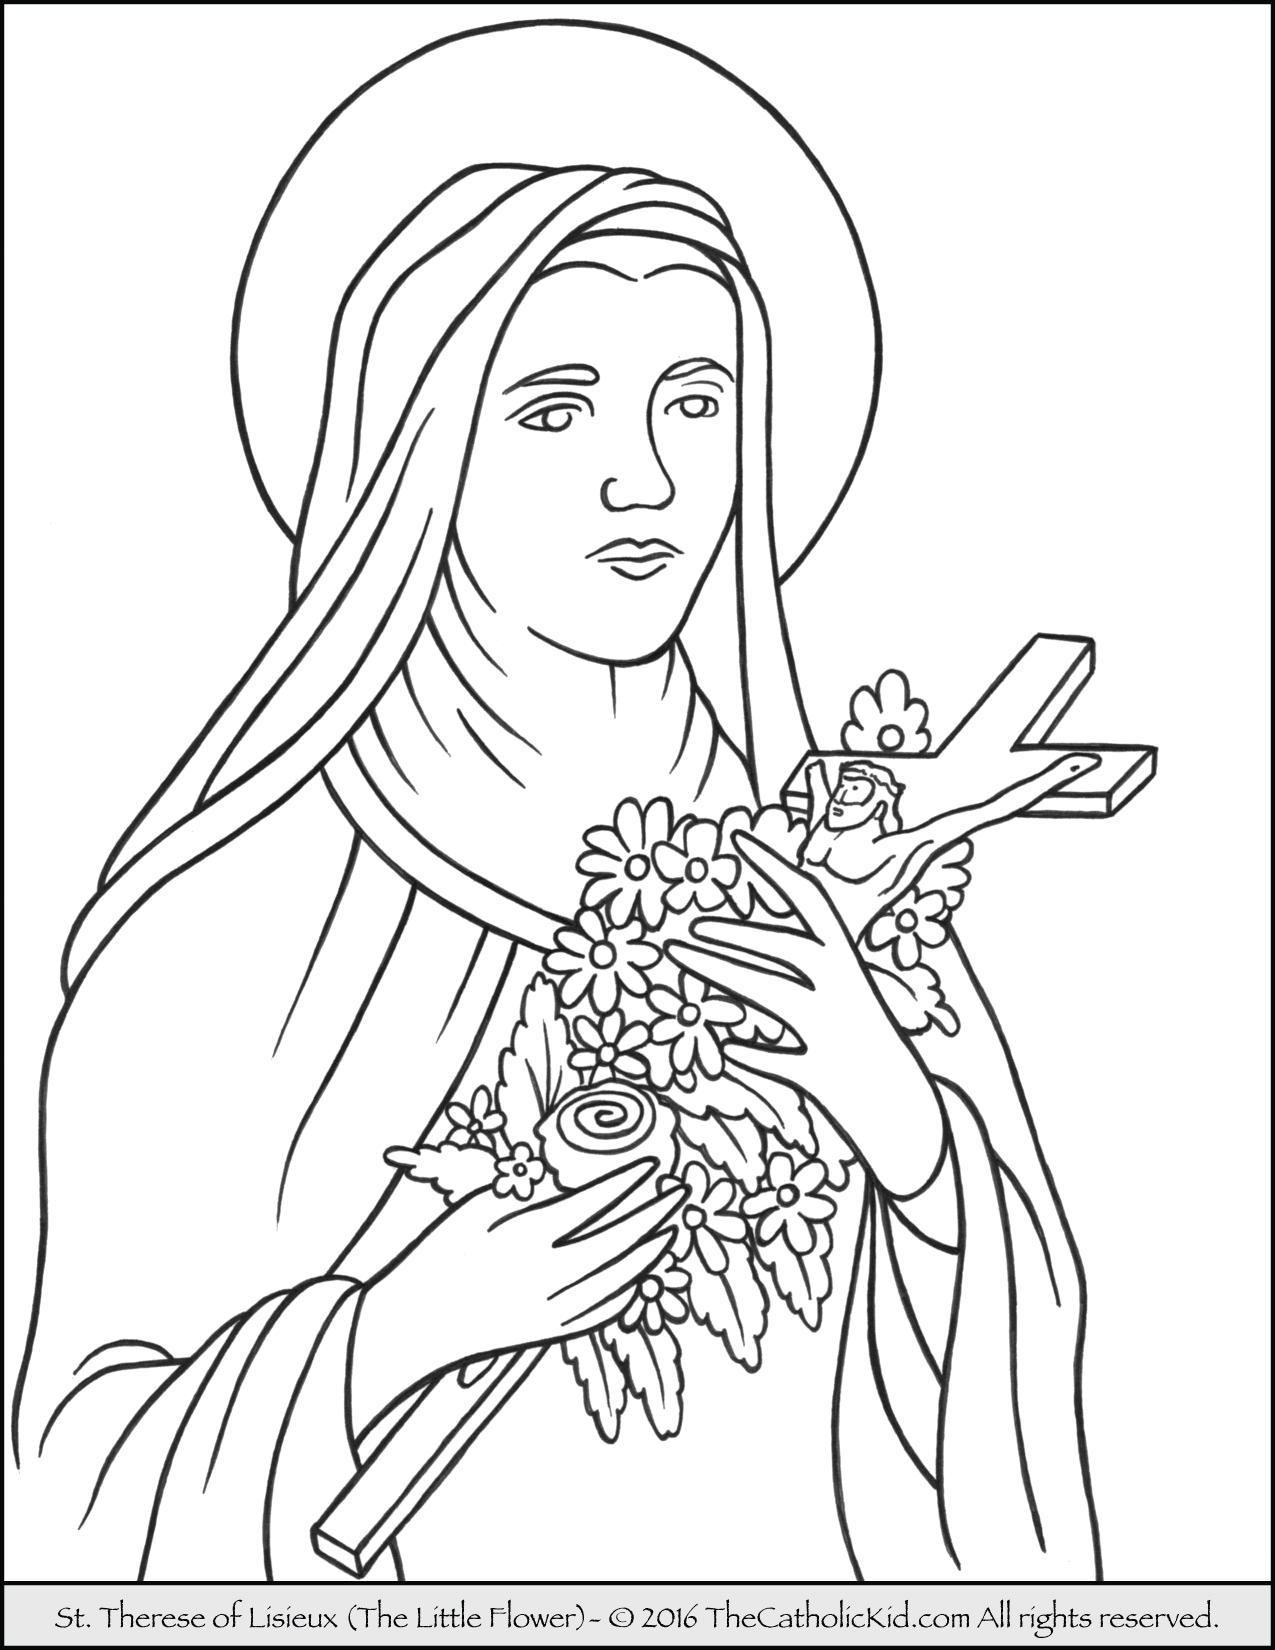 Coloring Page Of St therese Of Lisieux Saint therese Of Lisieux Little Flower Coloring Page